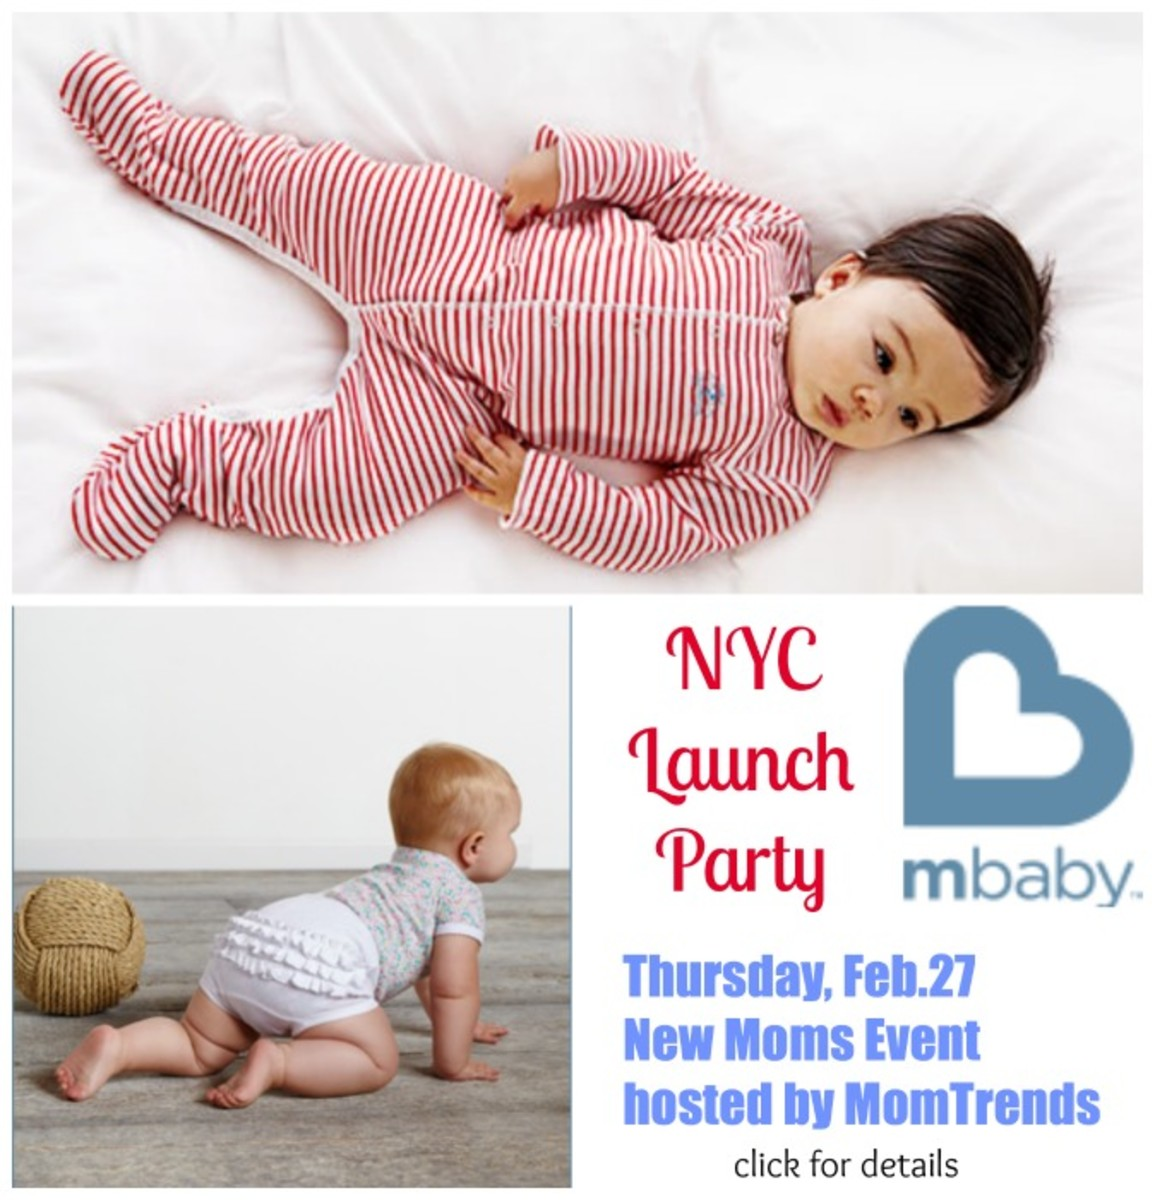 cmbaby nyc launch party